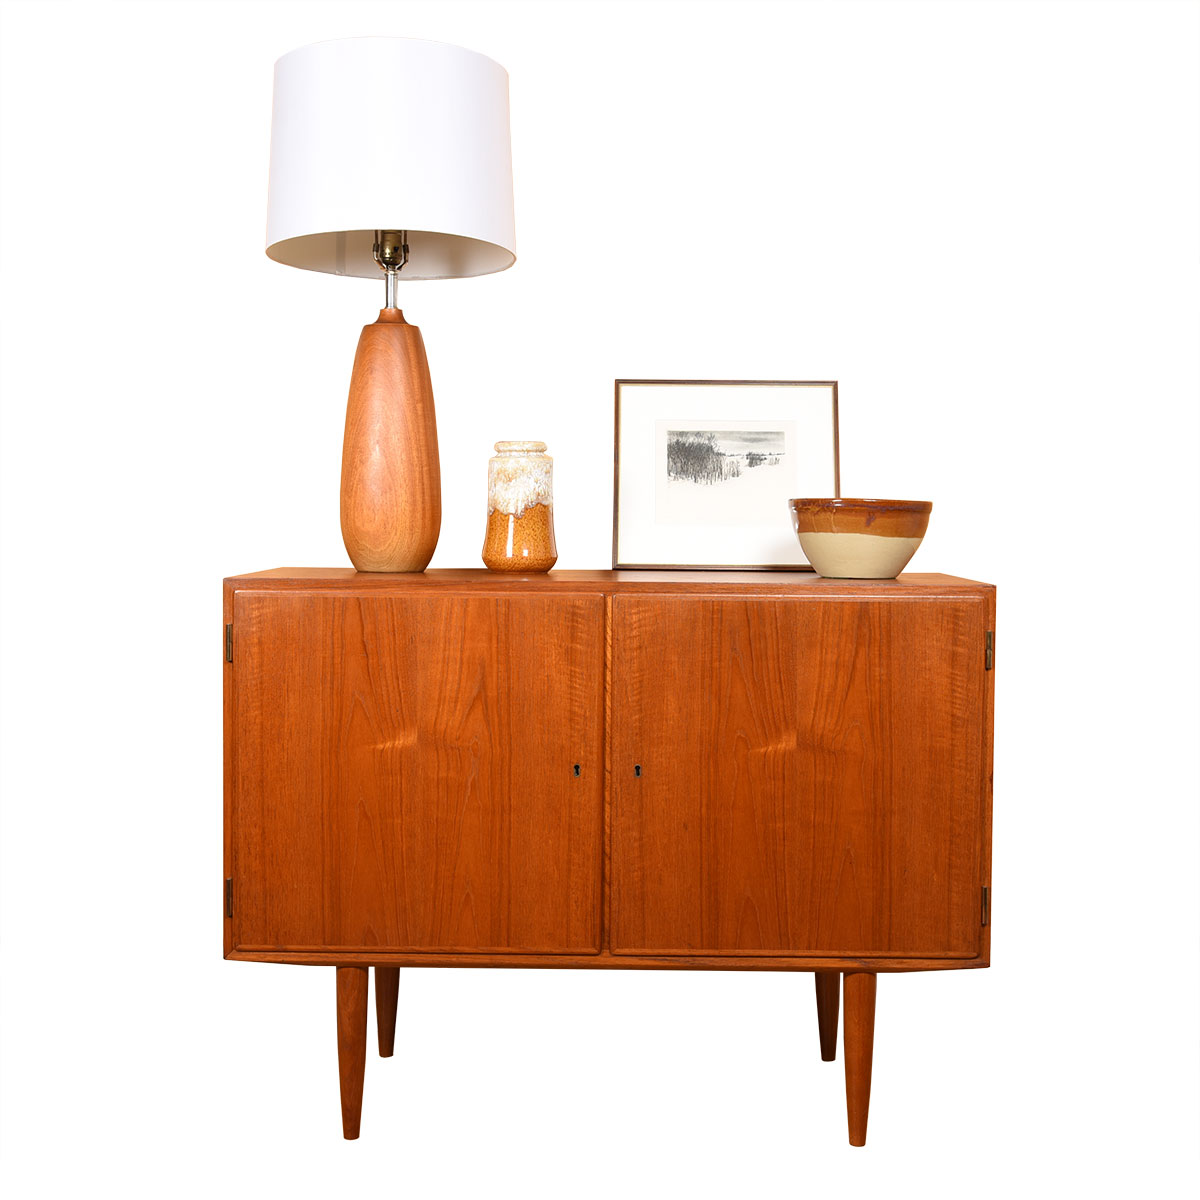 Tall Danish Modern Turned Teak Lamp